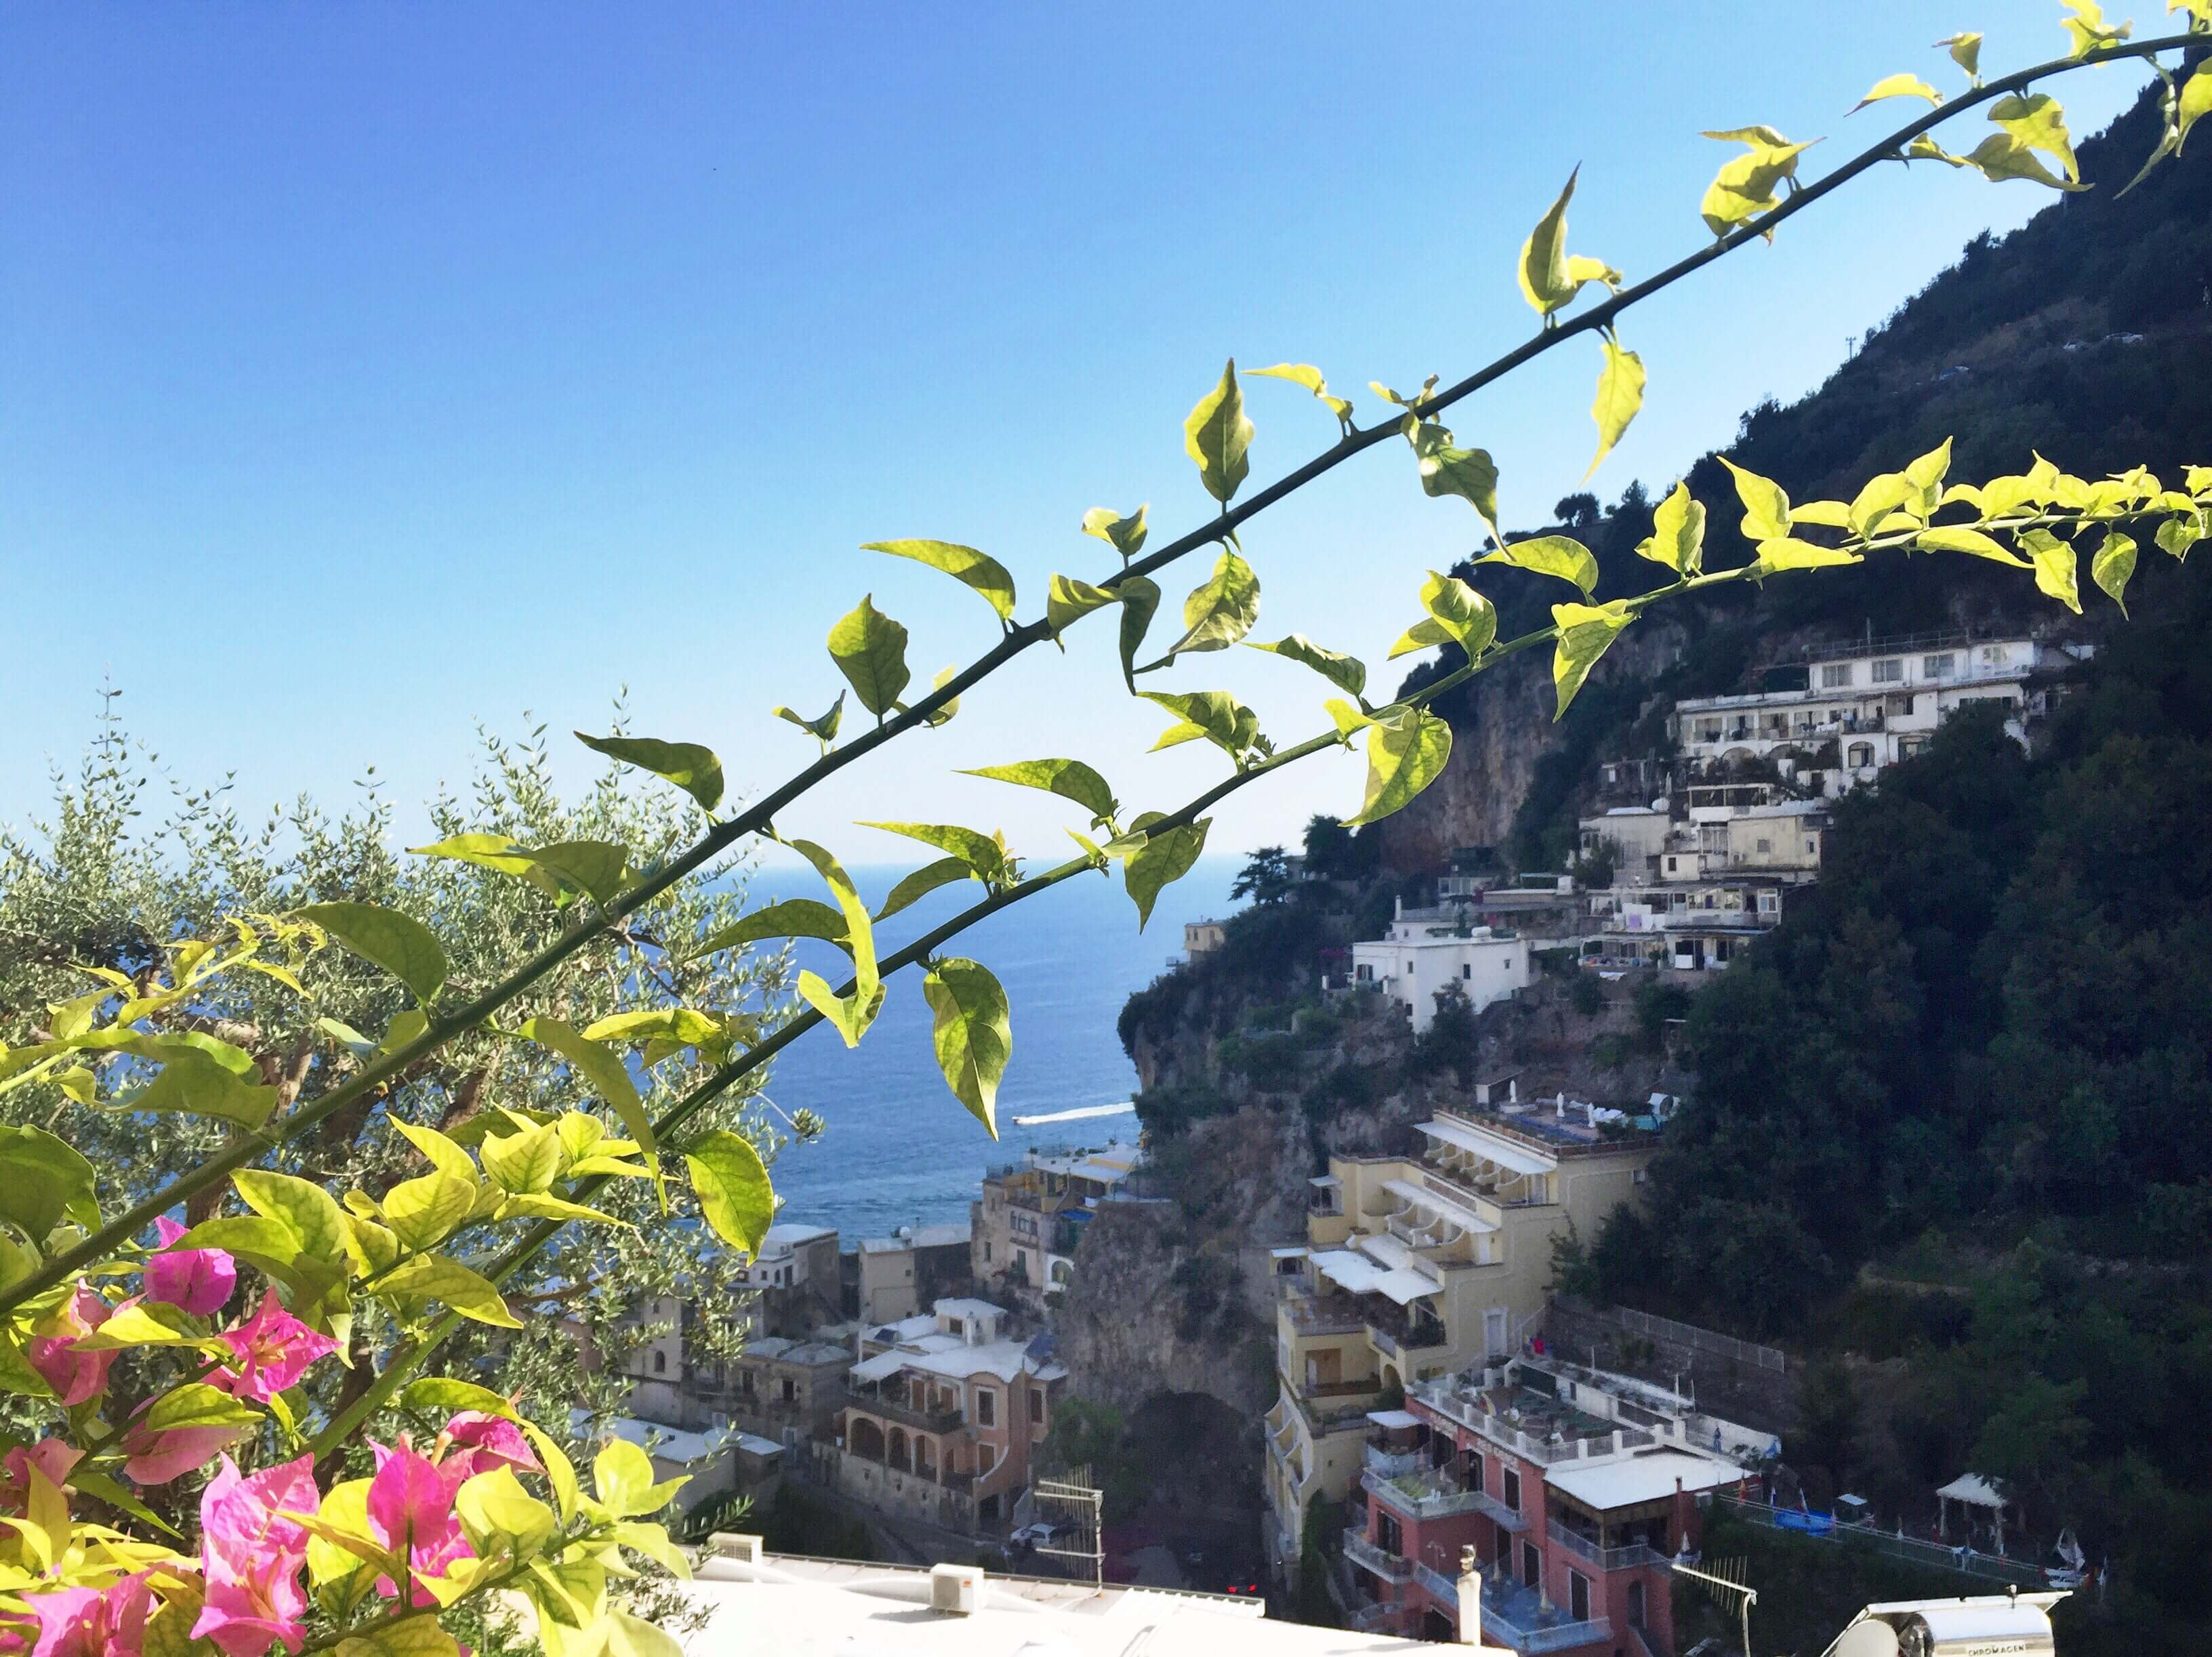 Lovely flowers against the hilly landscape of Positano